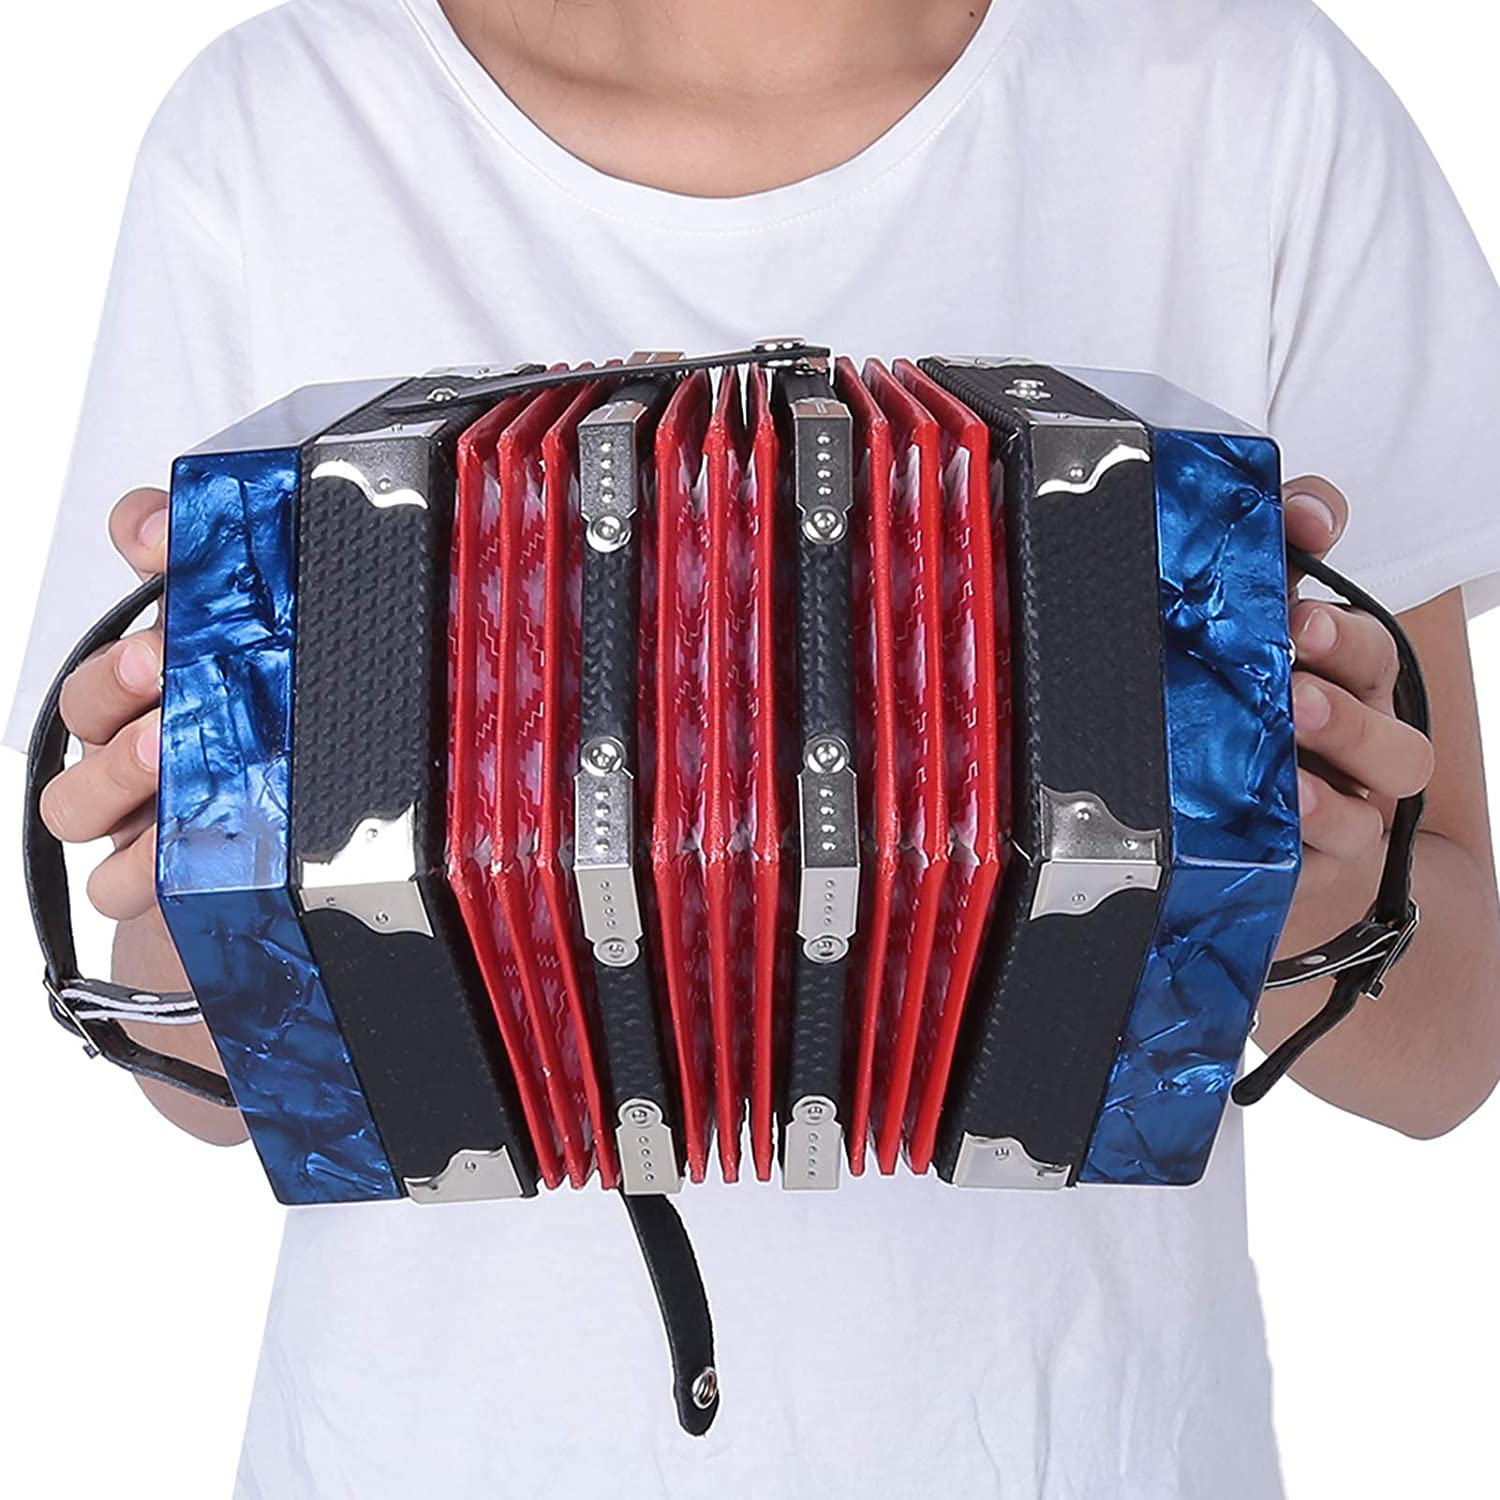 Excellence Concertina ABS Durable Professional Reservation Easy Play Conve To Learn